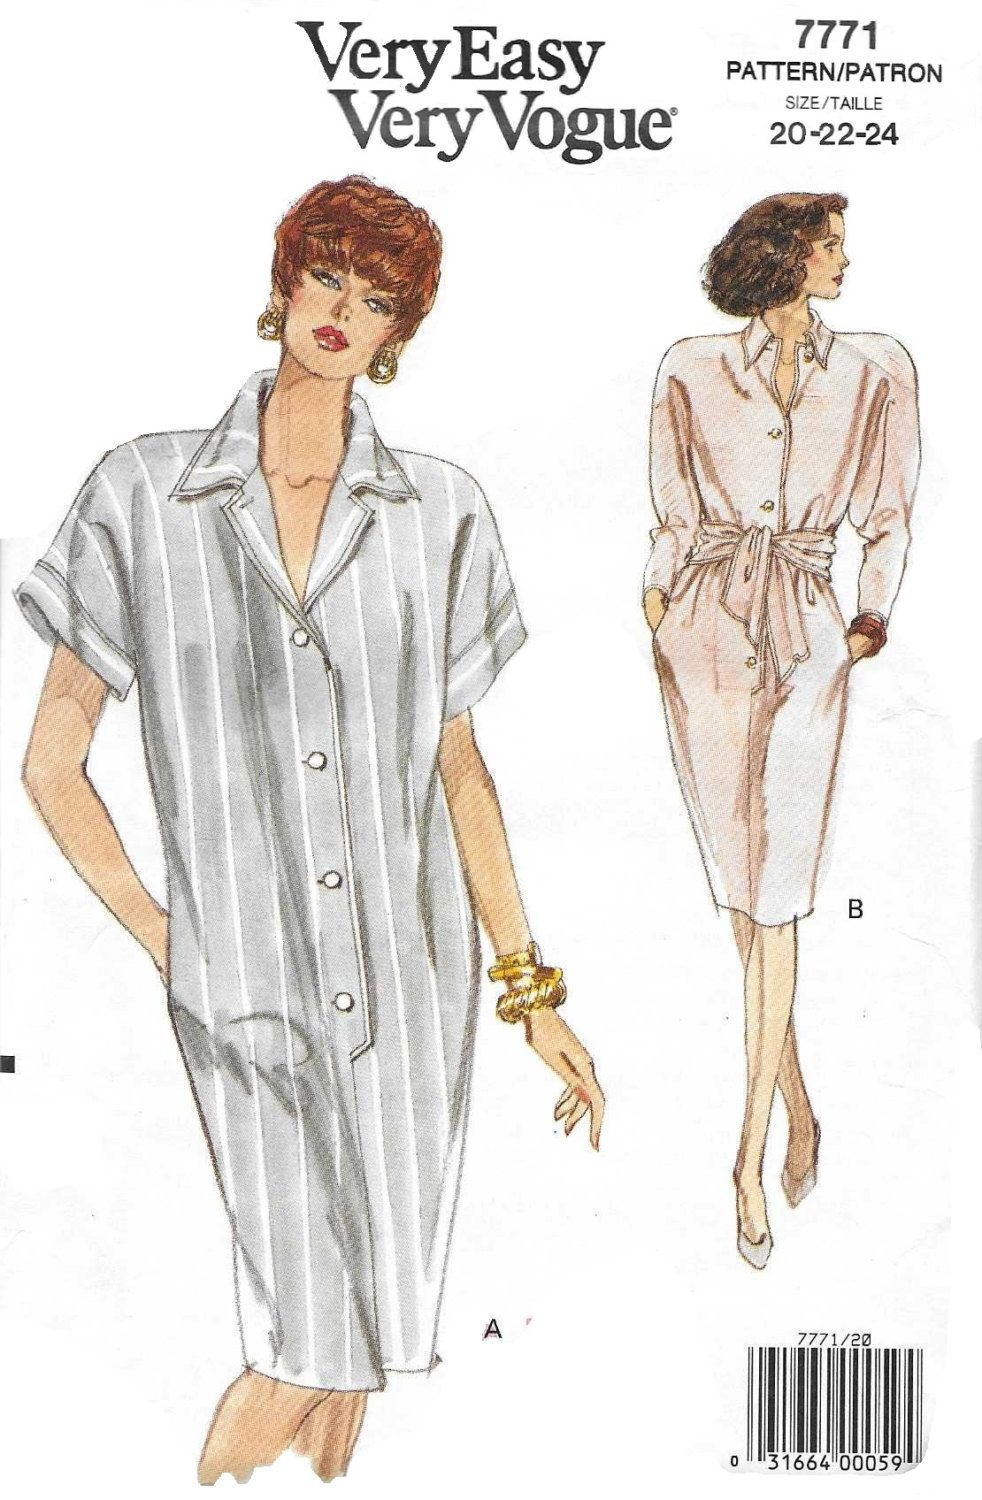 Vogue 7771 Women\'s 90s Tapered Dress Sewing Pattern Bust 42 44 46